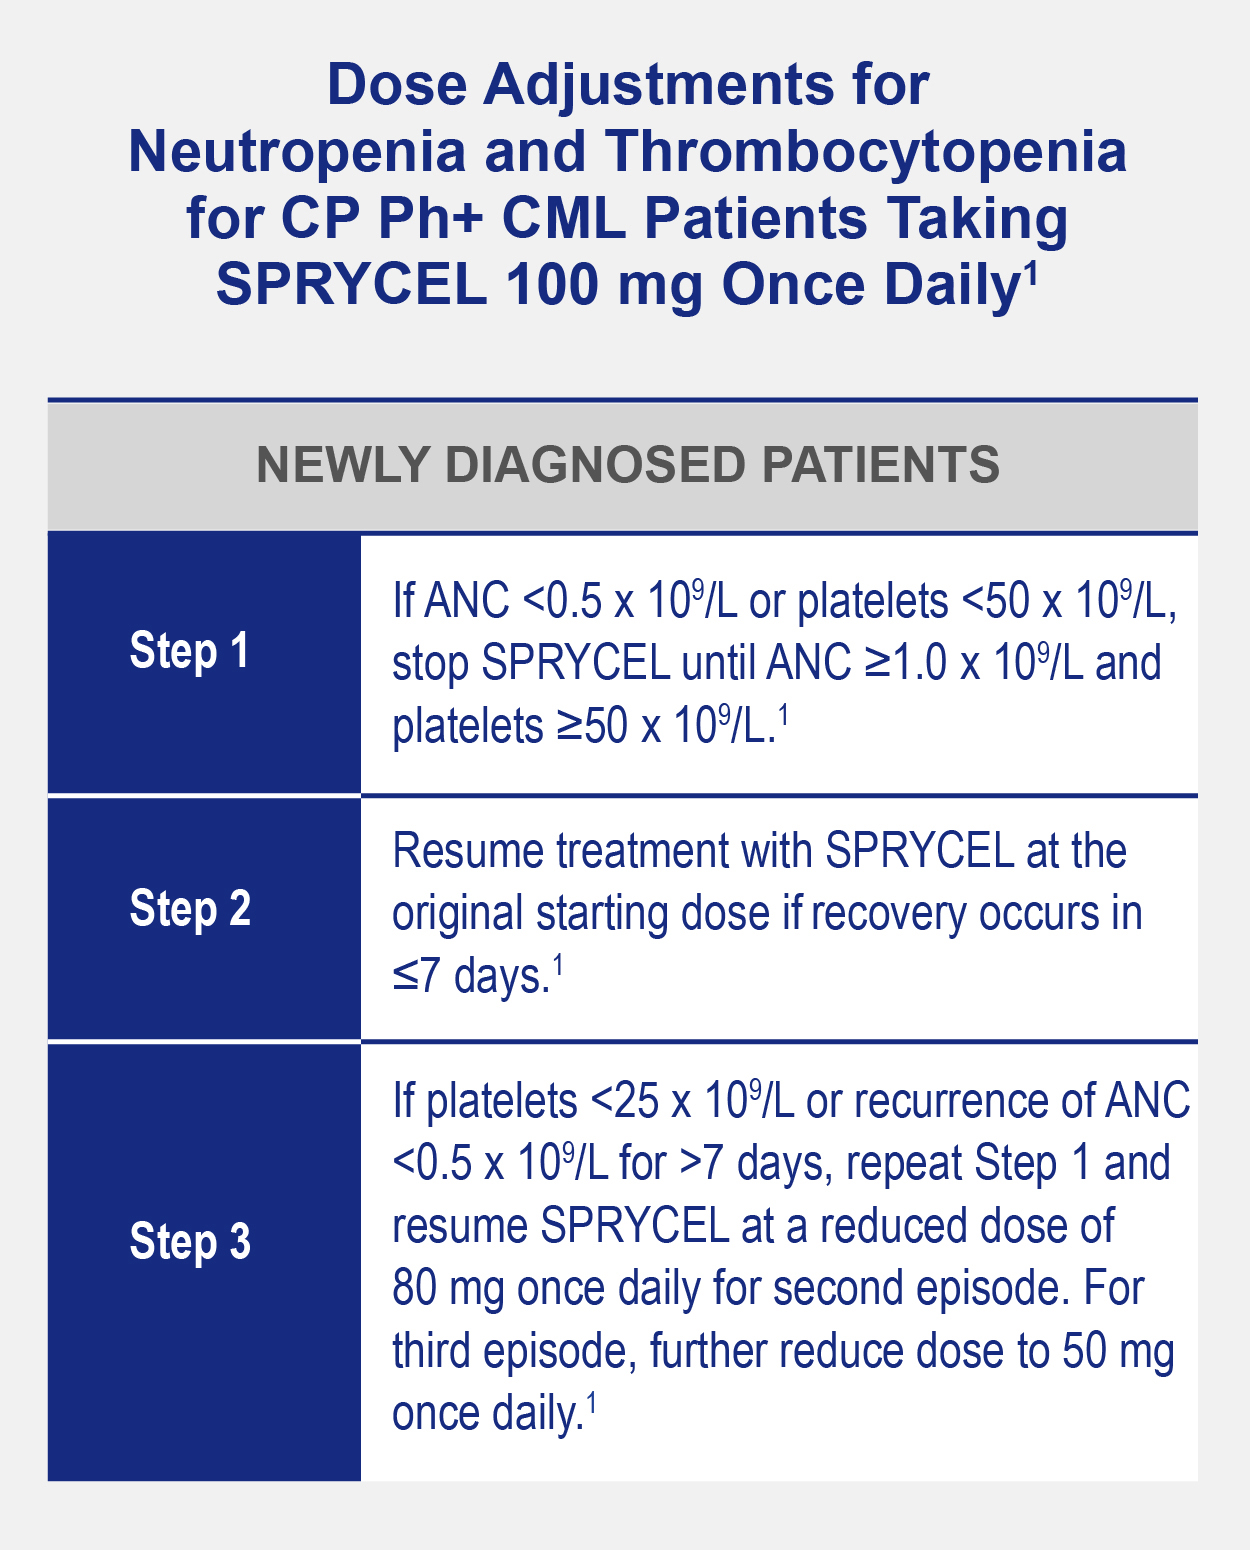 Chart shows dosing steps for newly diagnosed patients with chronic phase Philadelphia positive chronic myeloid leukemia (CML)